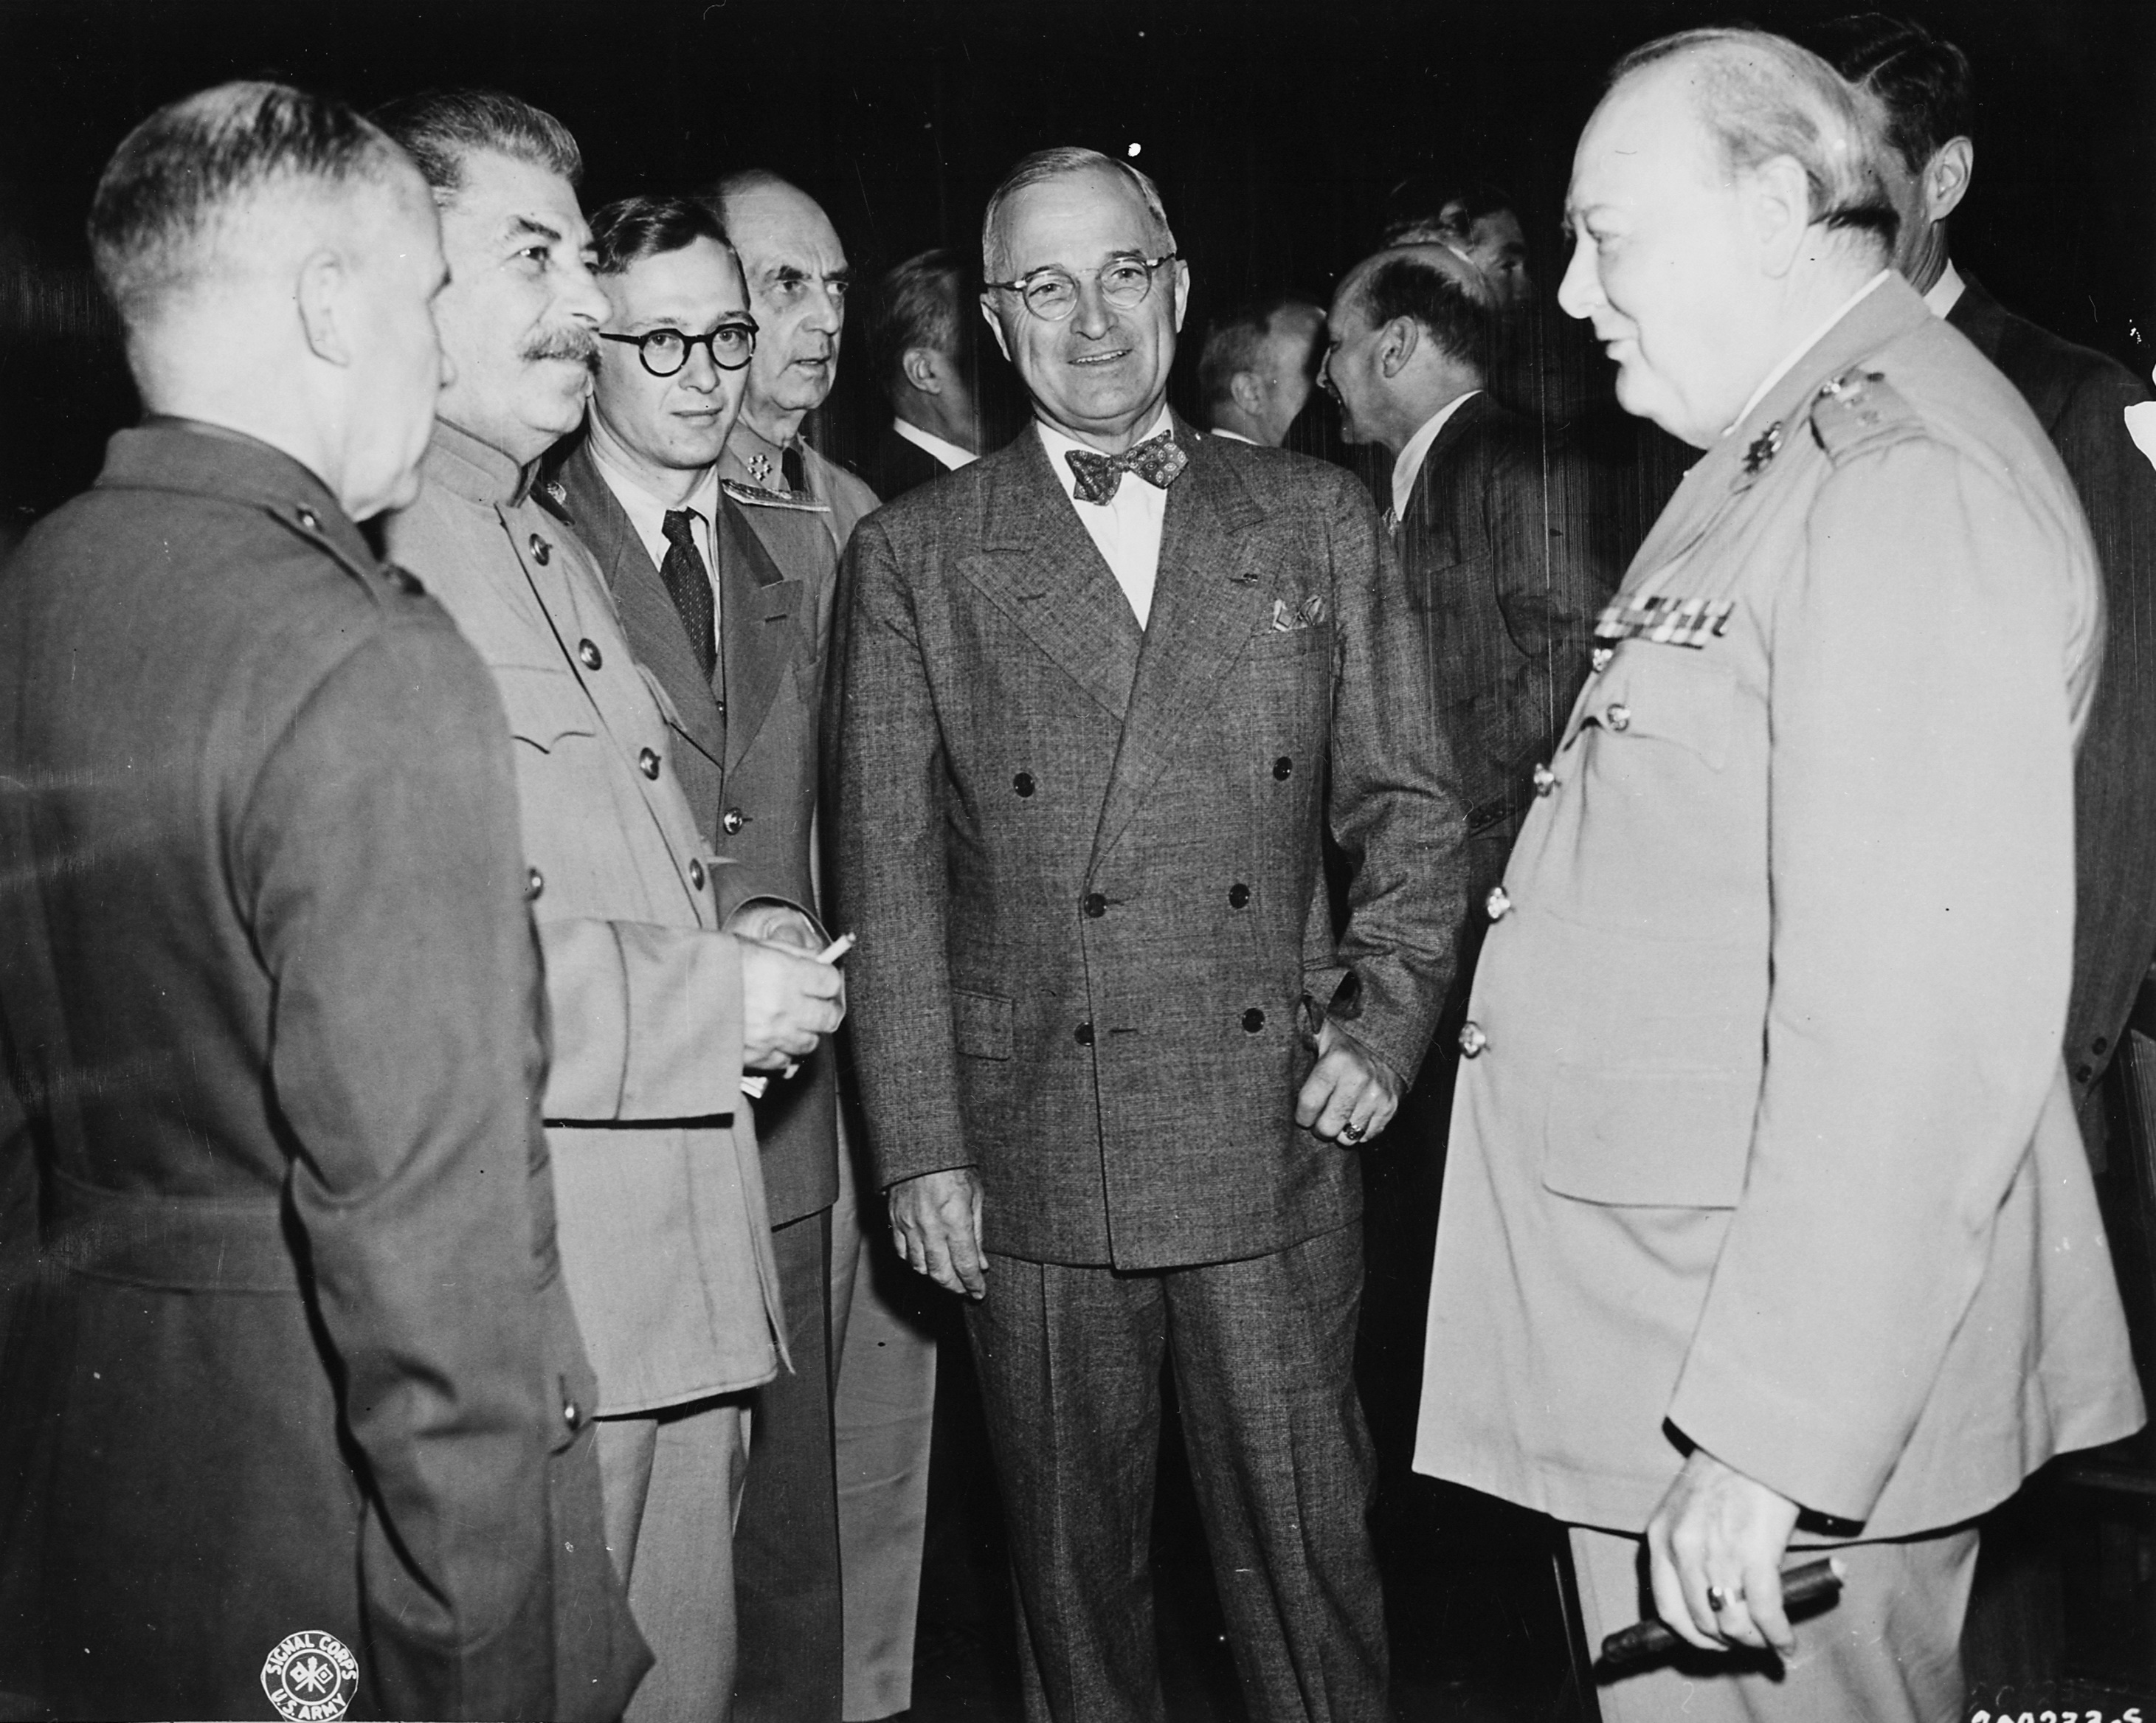 Three men in suits standing with several men in the background